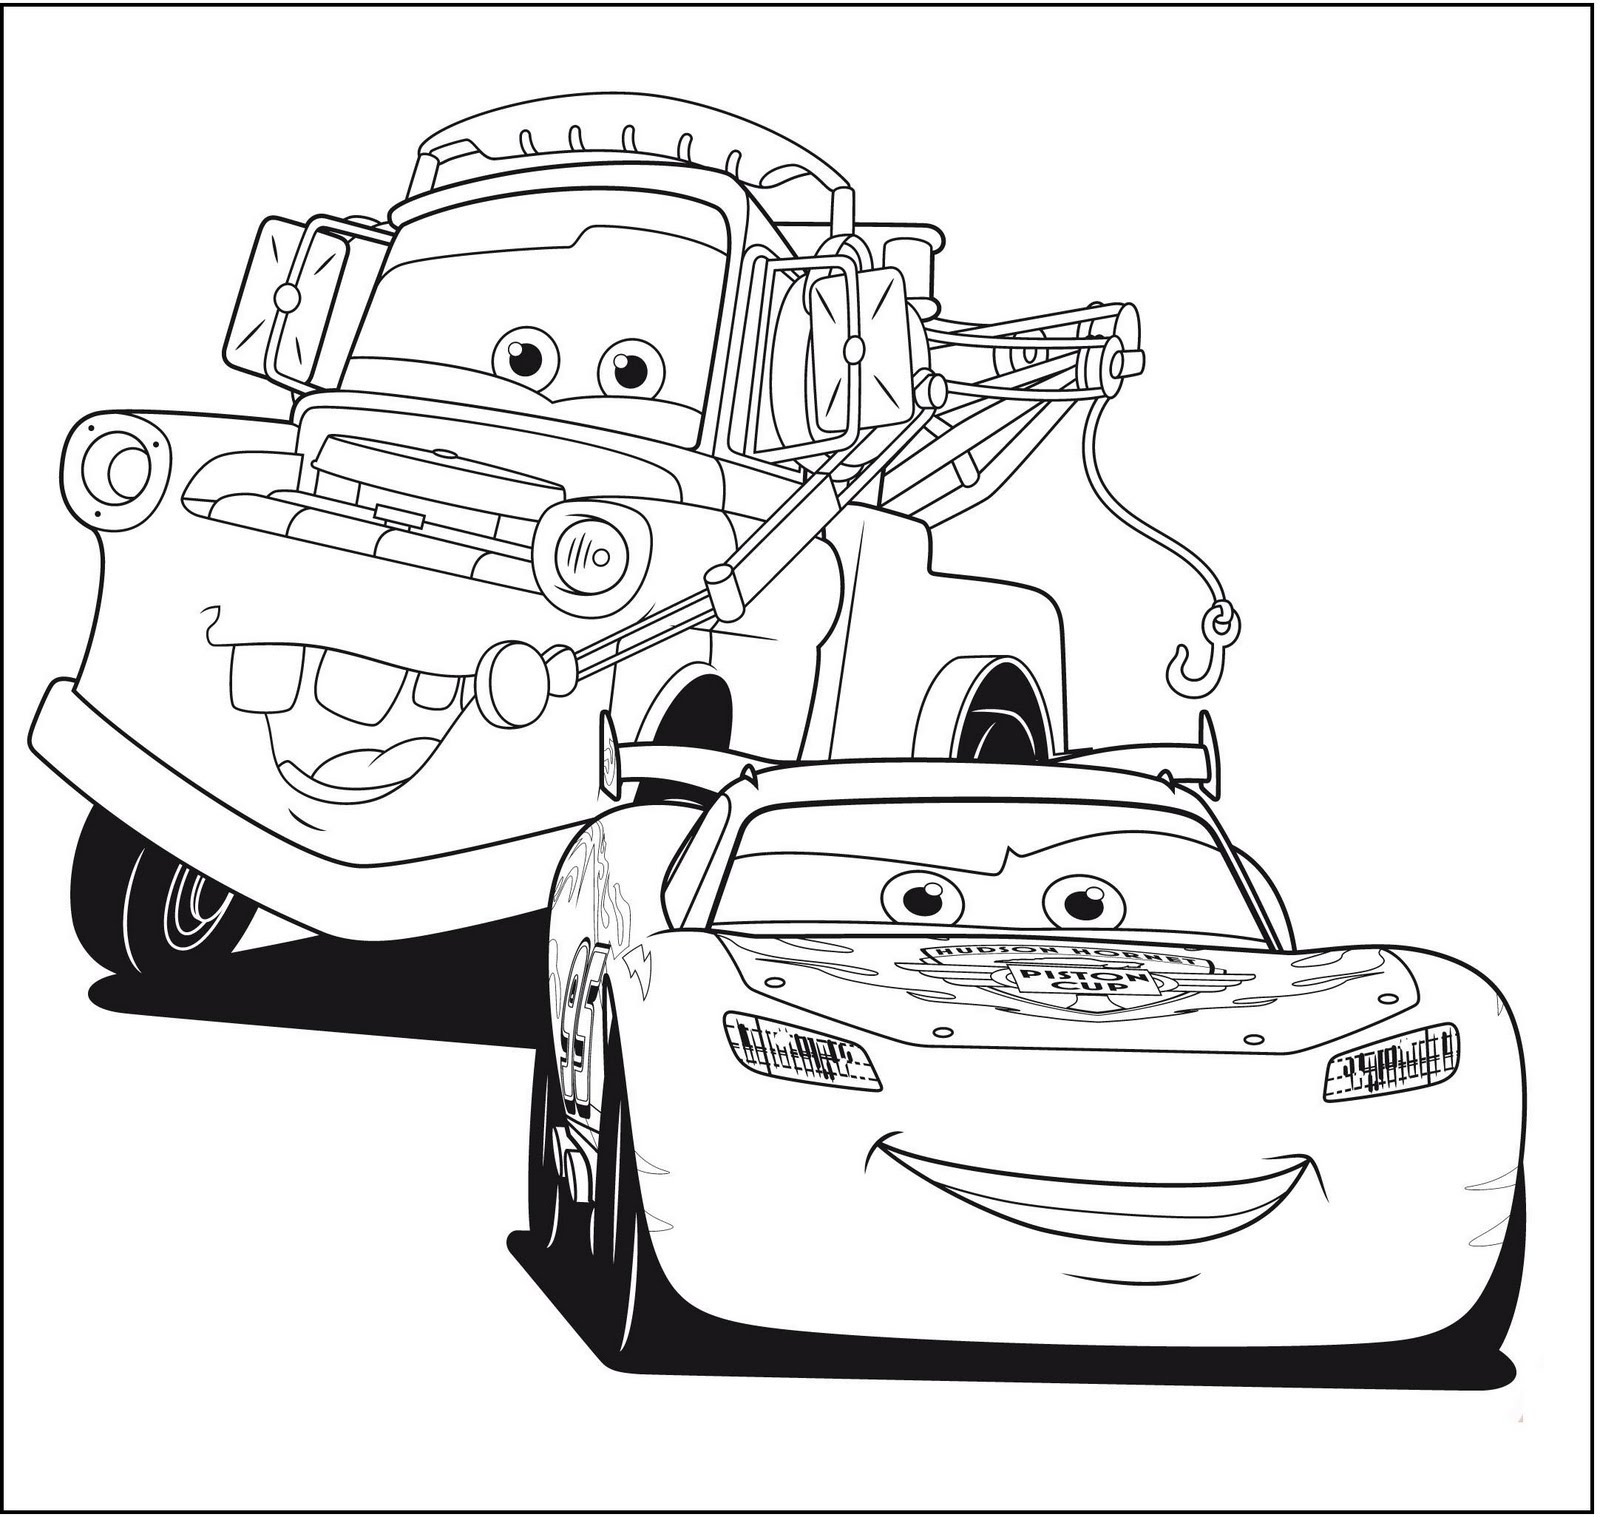 B6560 101 Png 1 600x1 517 Pixel Lightning Mcqueen Drawing Cars Coloring Pages Race Car Coloring Pages